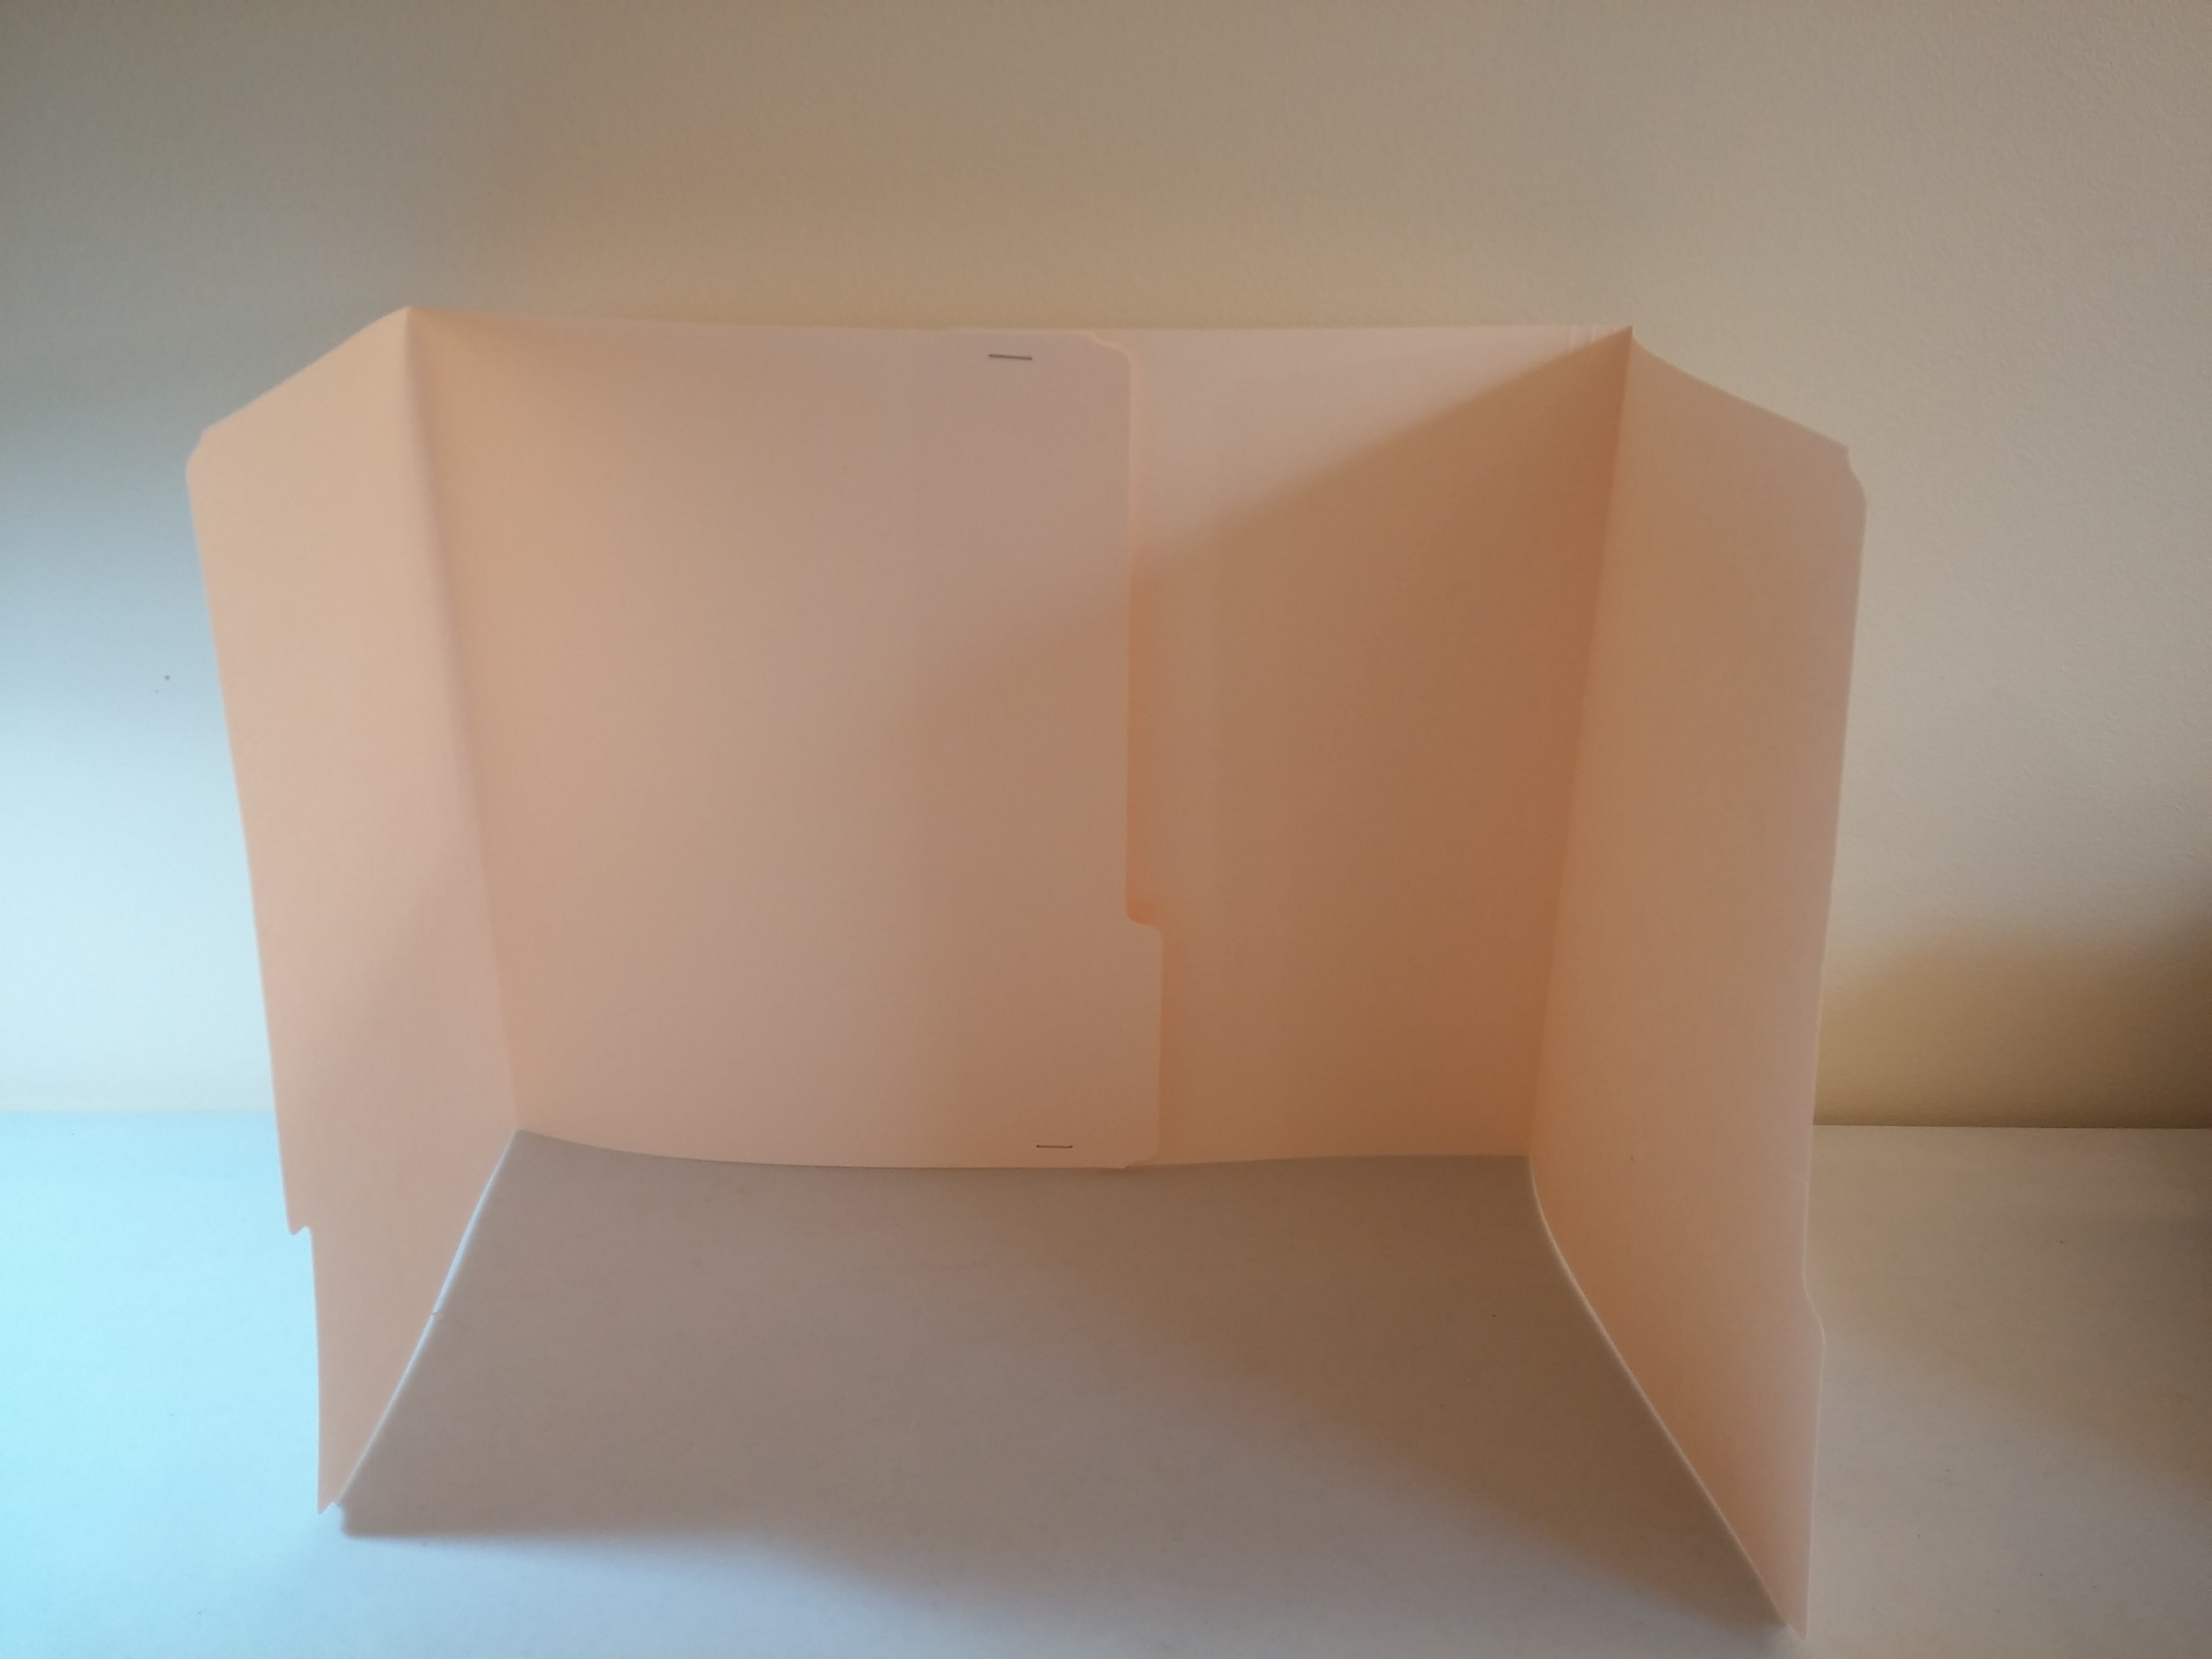 Manila folder privacy dividers